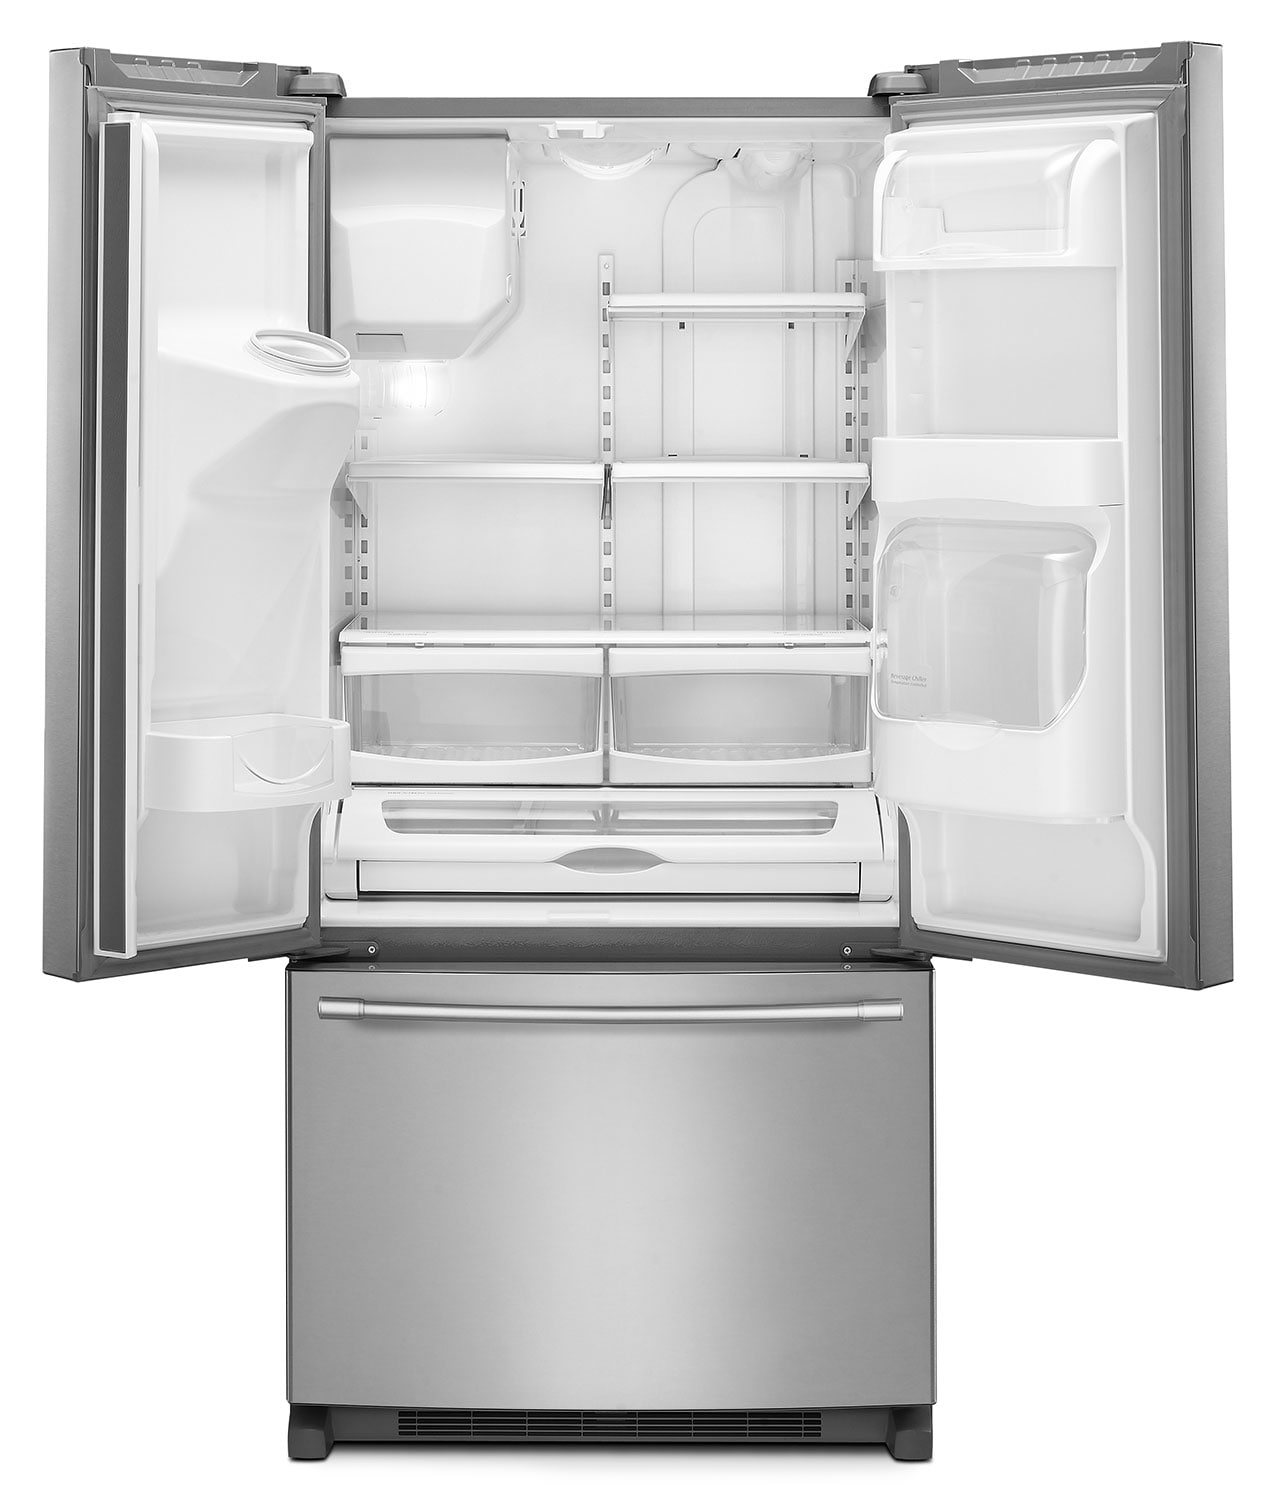 Maytag Fingerprint Resistant Stainless Steel French Door Refrigerator (22  Cu. Ft.)   MFI2269FRZ